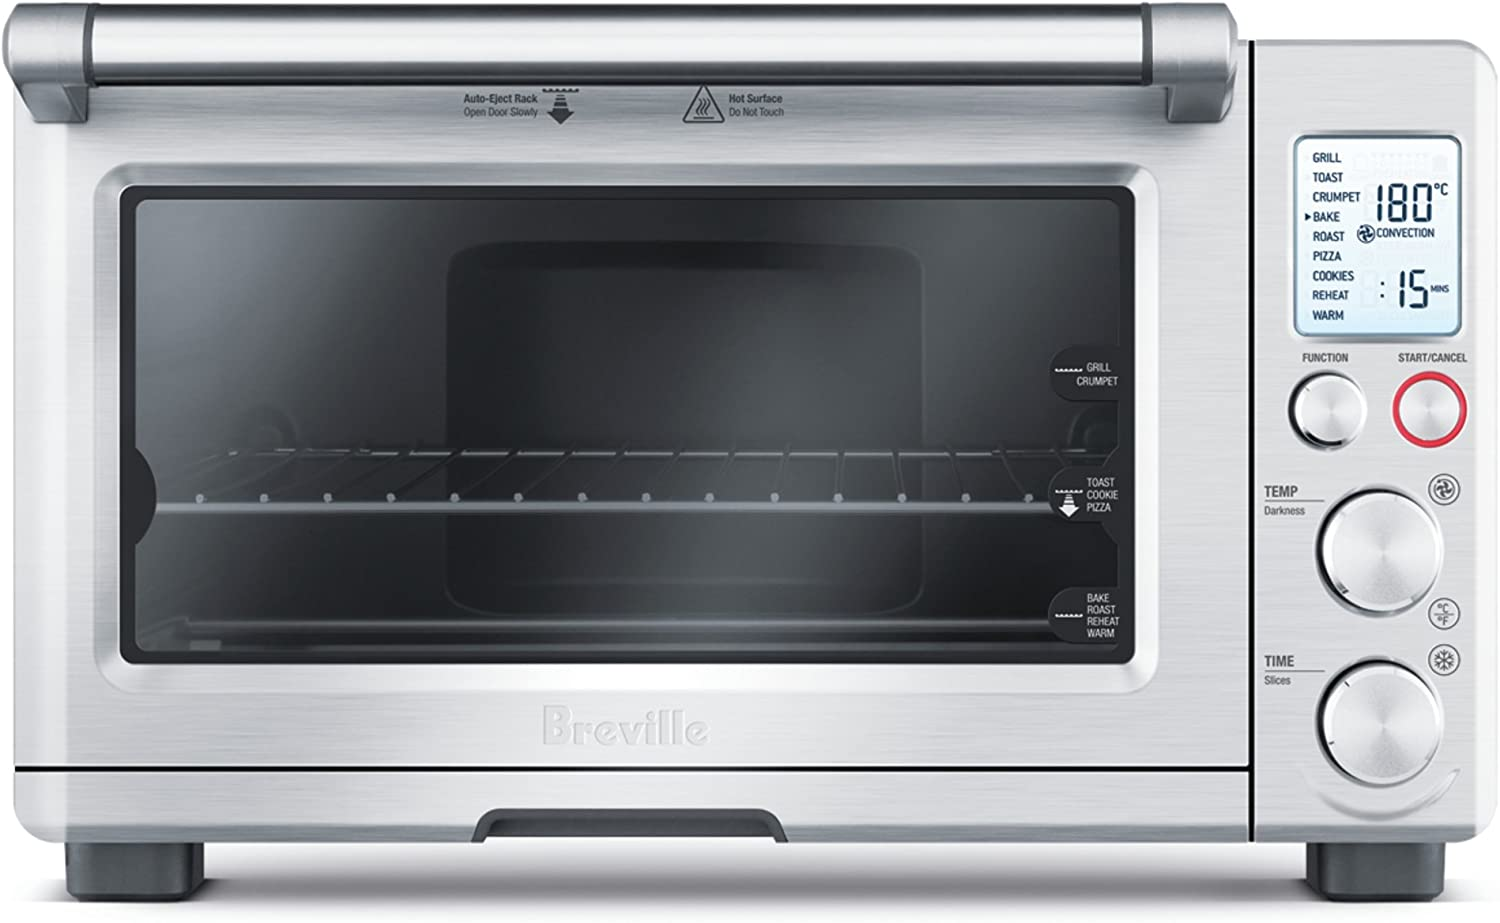 Breville BOV800XL smart oven pro review